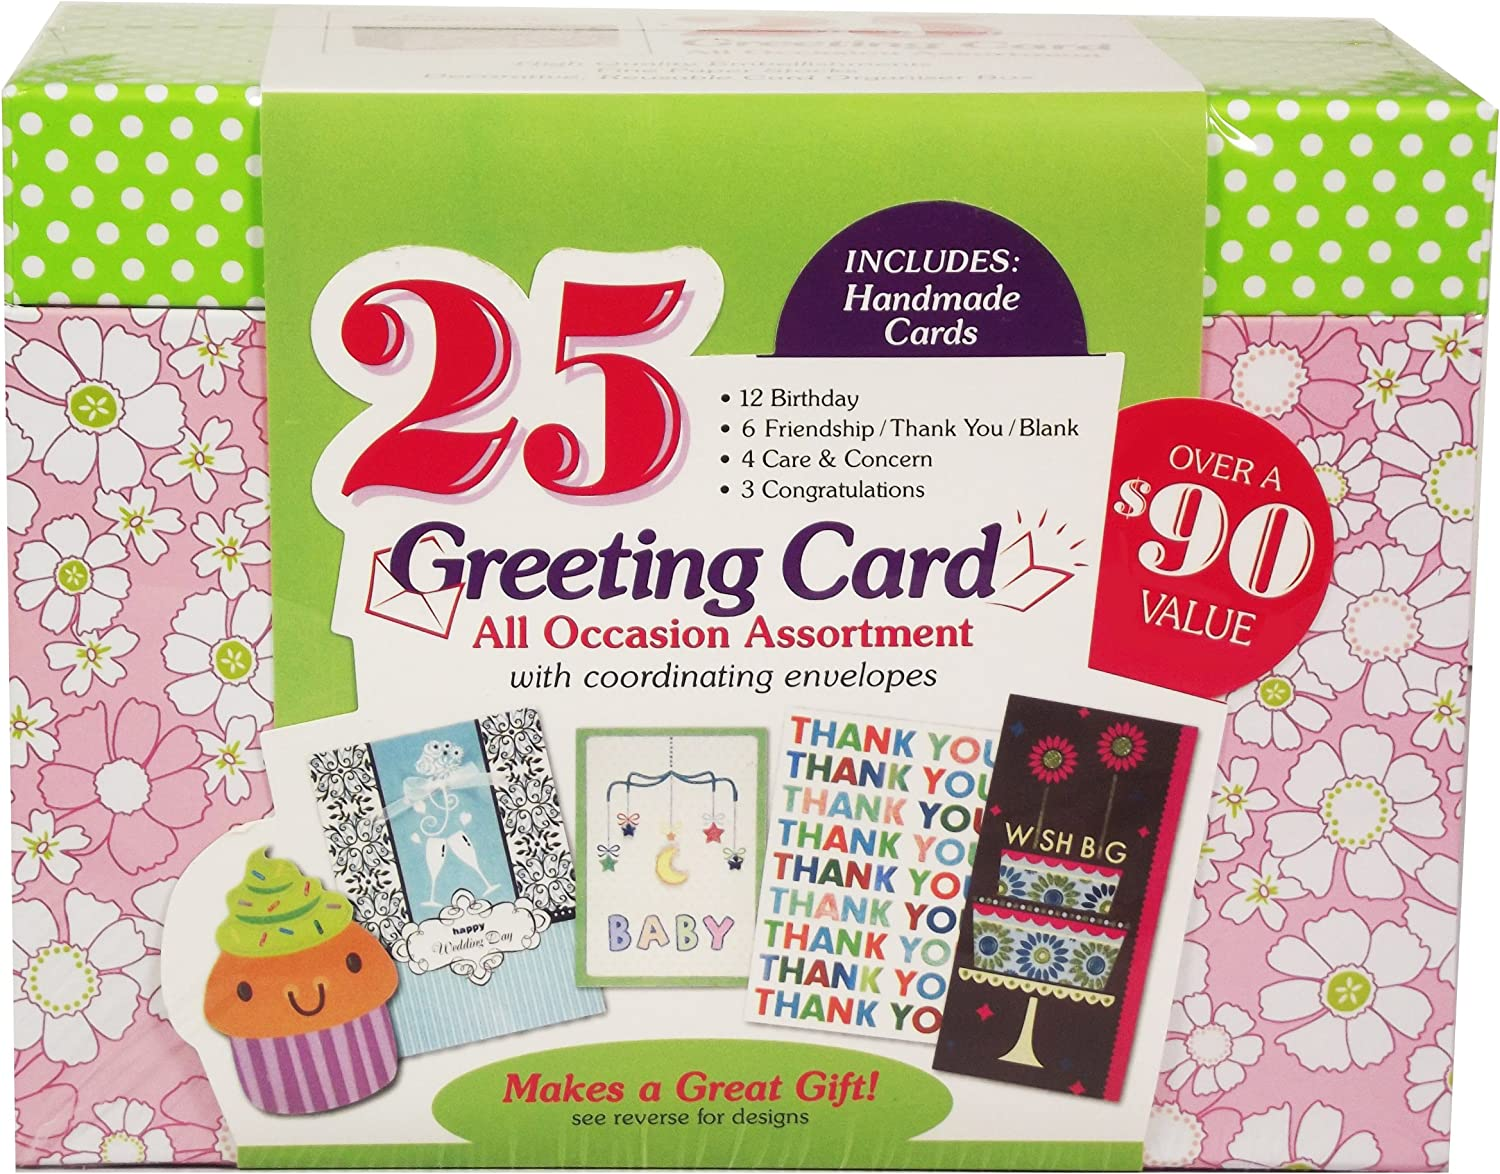 Blue Box Paper Magic All Occasion Happy Greeting Card Handmade And Embellished